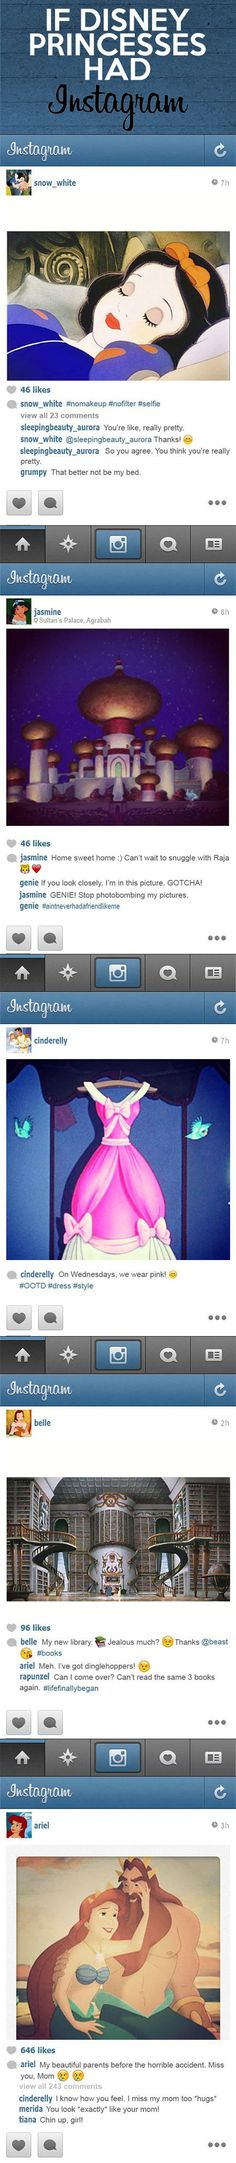 If Disney Princesses Had Instagram. Love this!! The comments by different character on each picture are really funny too!